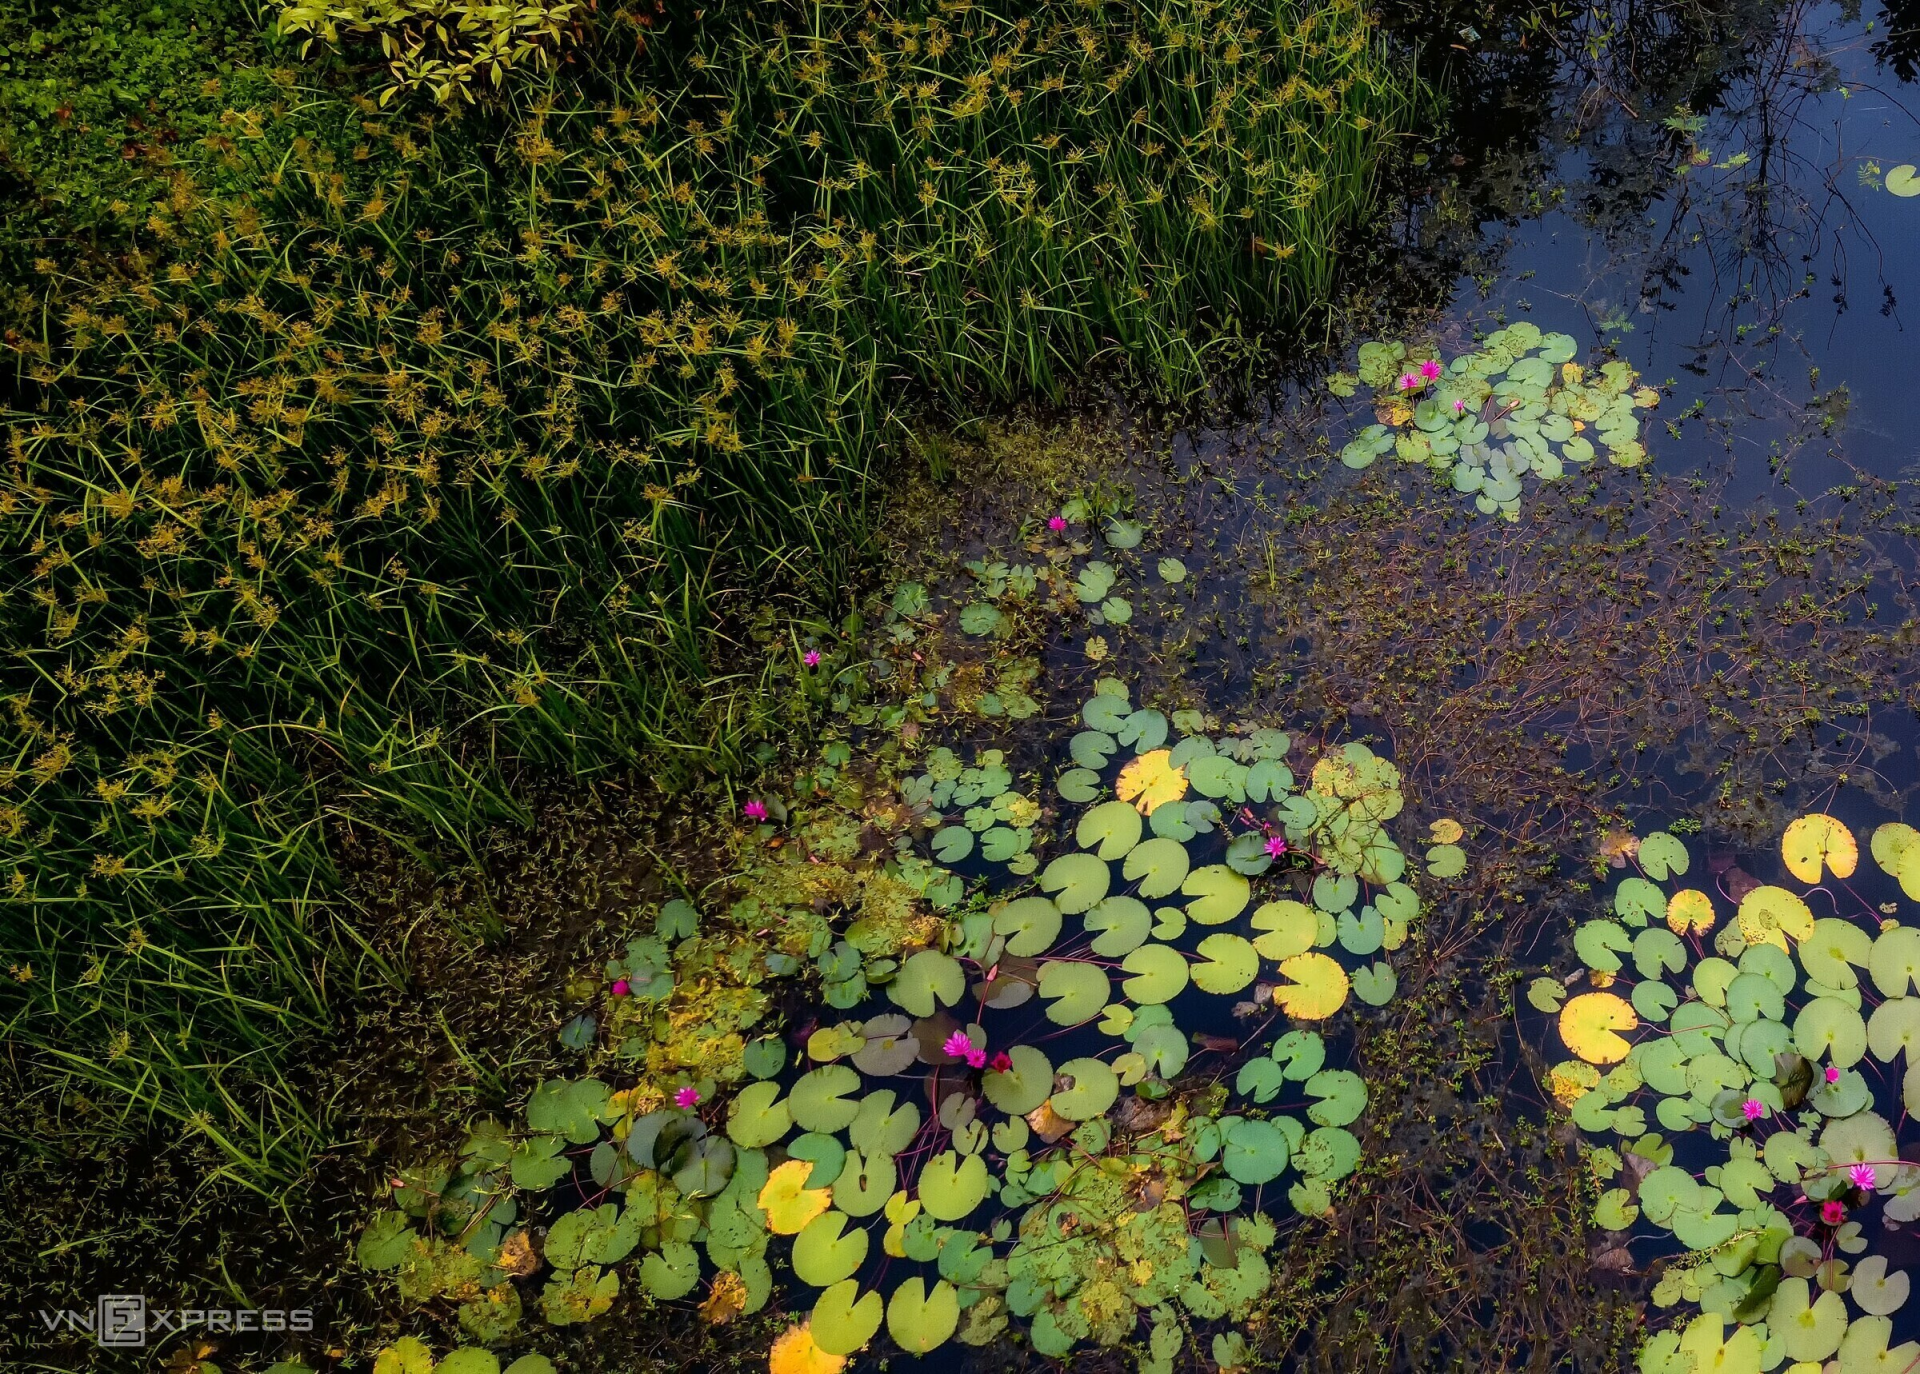 Around the water lily pond are reeds that add to its beauty. (Photo: VnExpress)